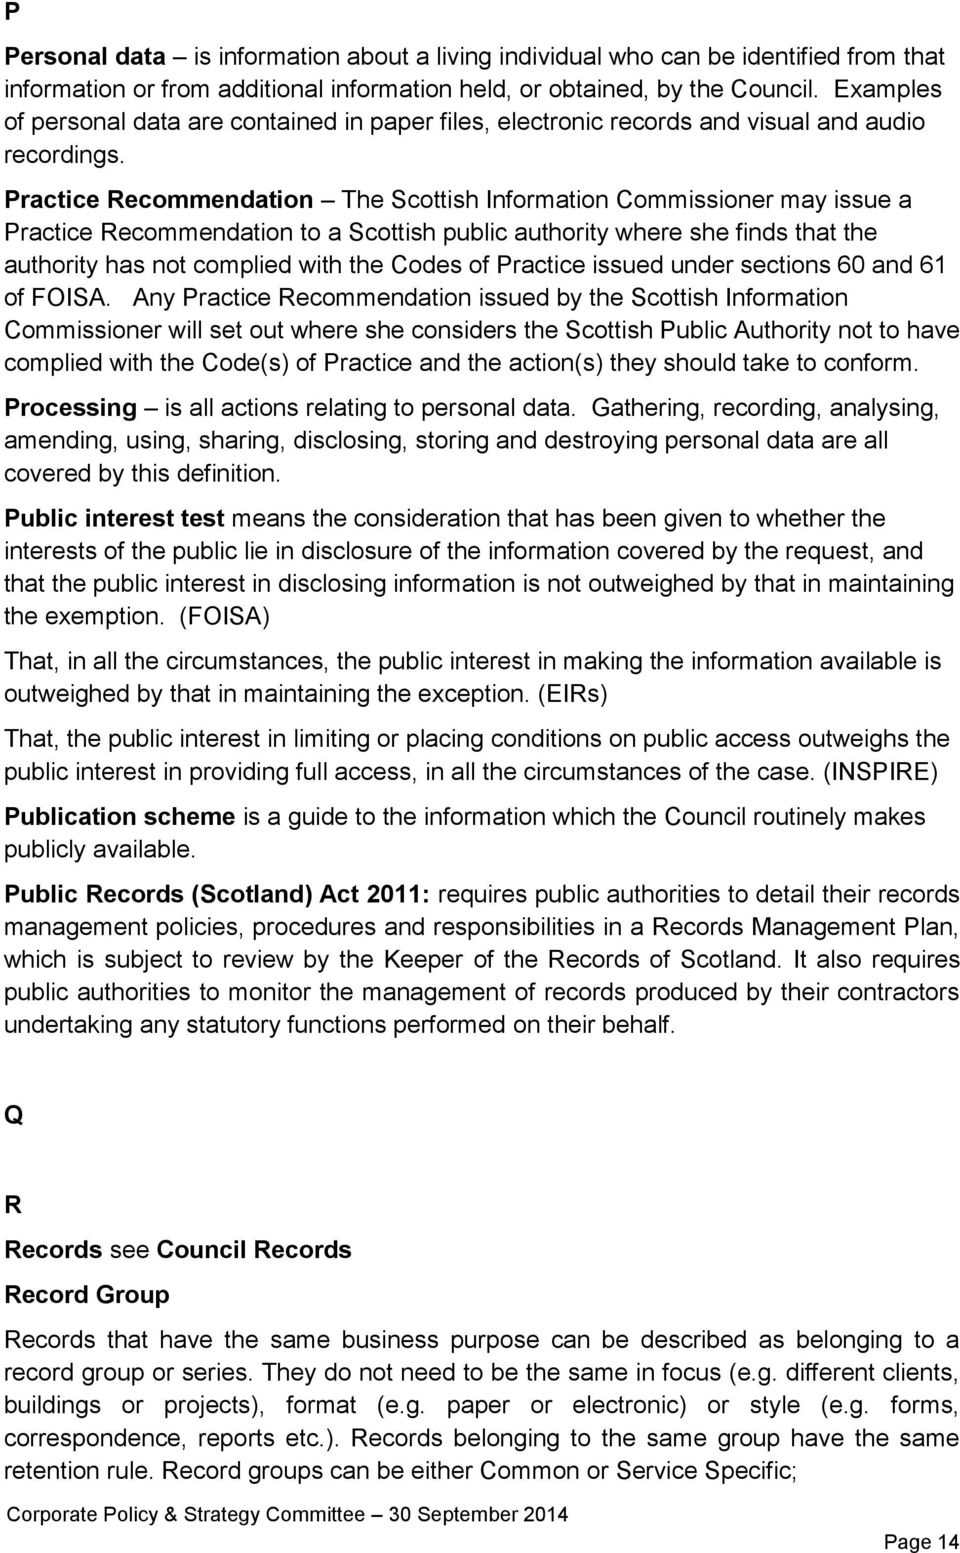 Practice Recommendation The Scottish Information Commissioner may issue a Practice Recommendation to a Scottish public authority where she finds that the authority has not complied with the Codes of